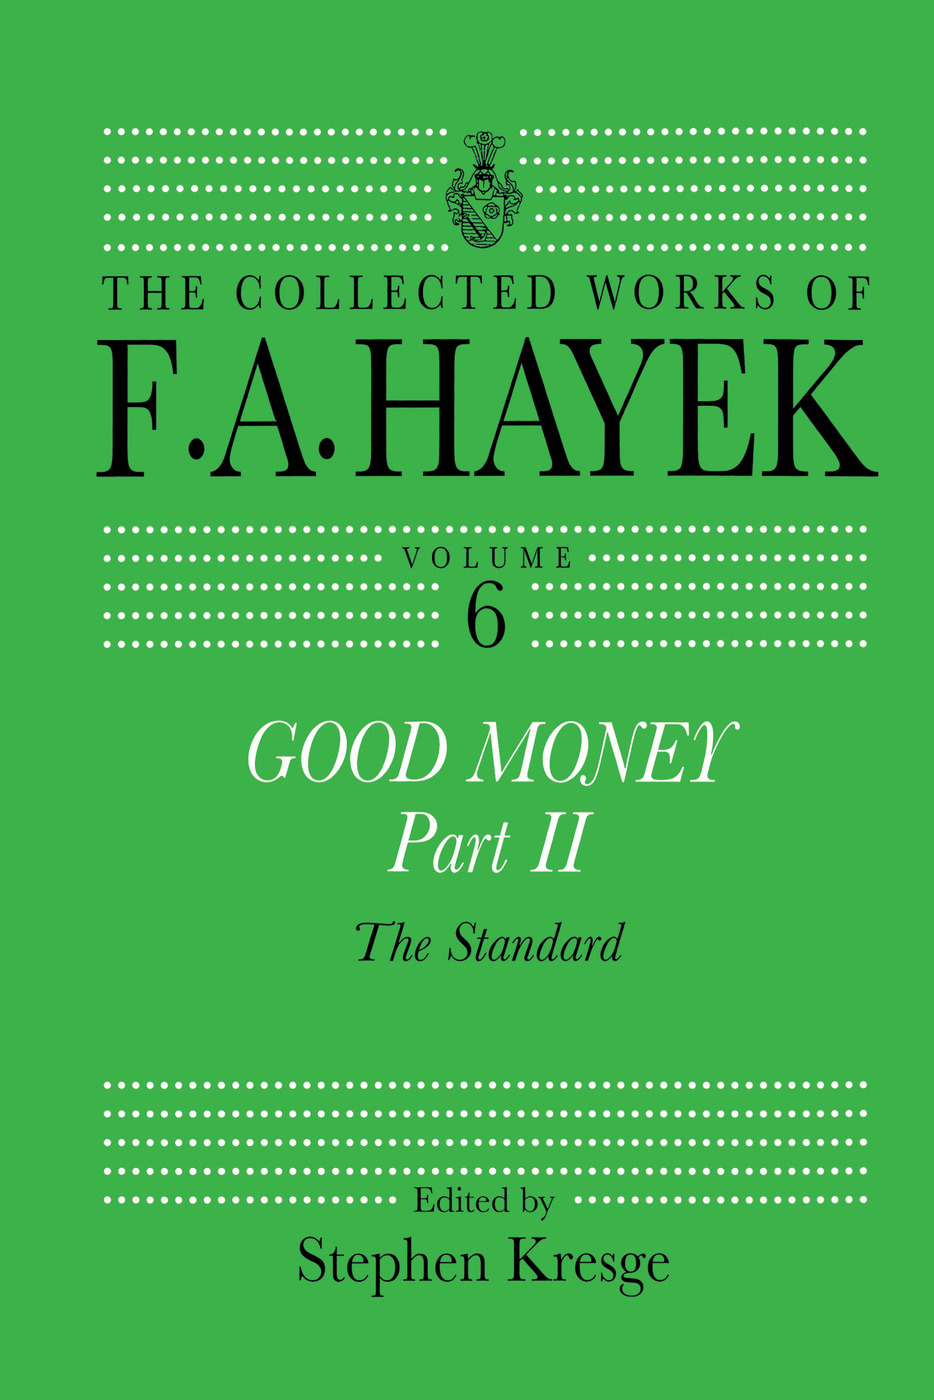 Good Money, Part II: Volume Six of the Collected Works of F.A. Hayek book cover